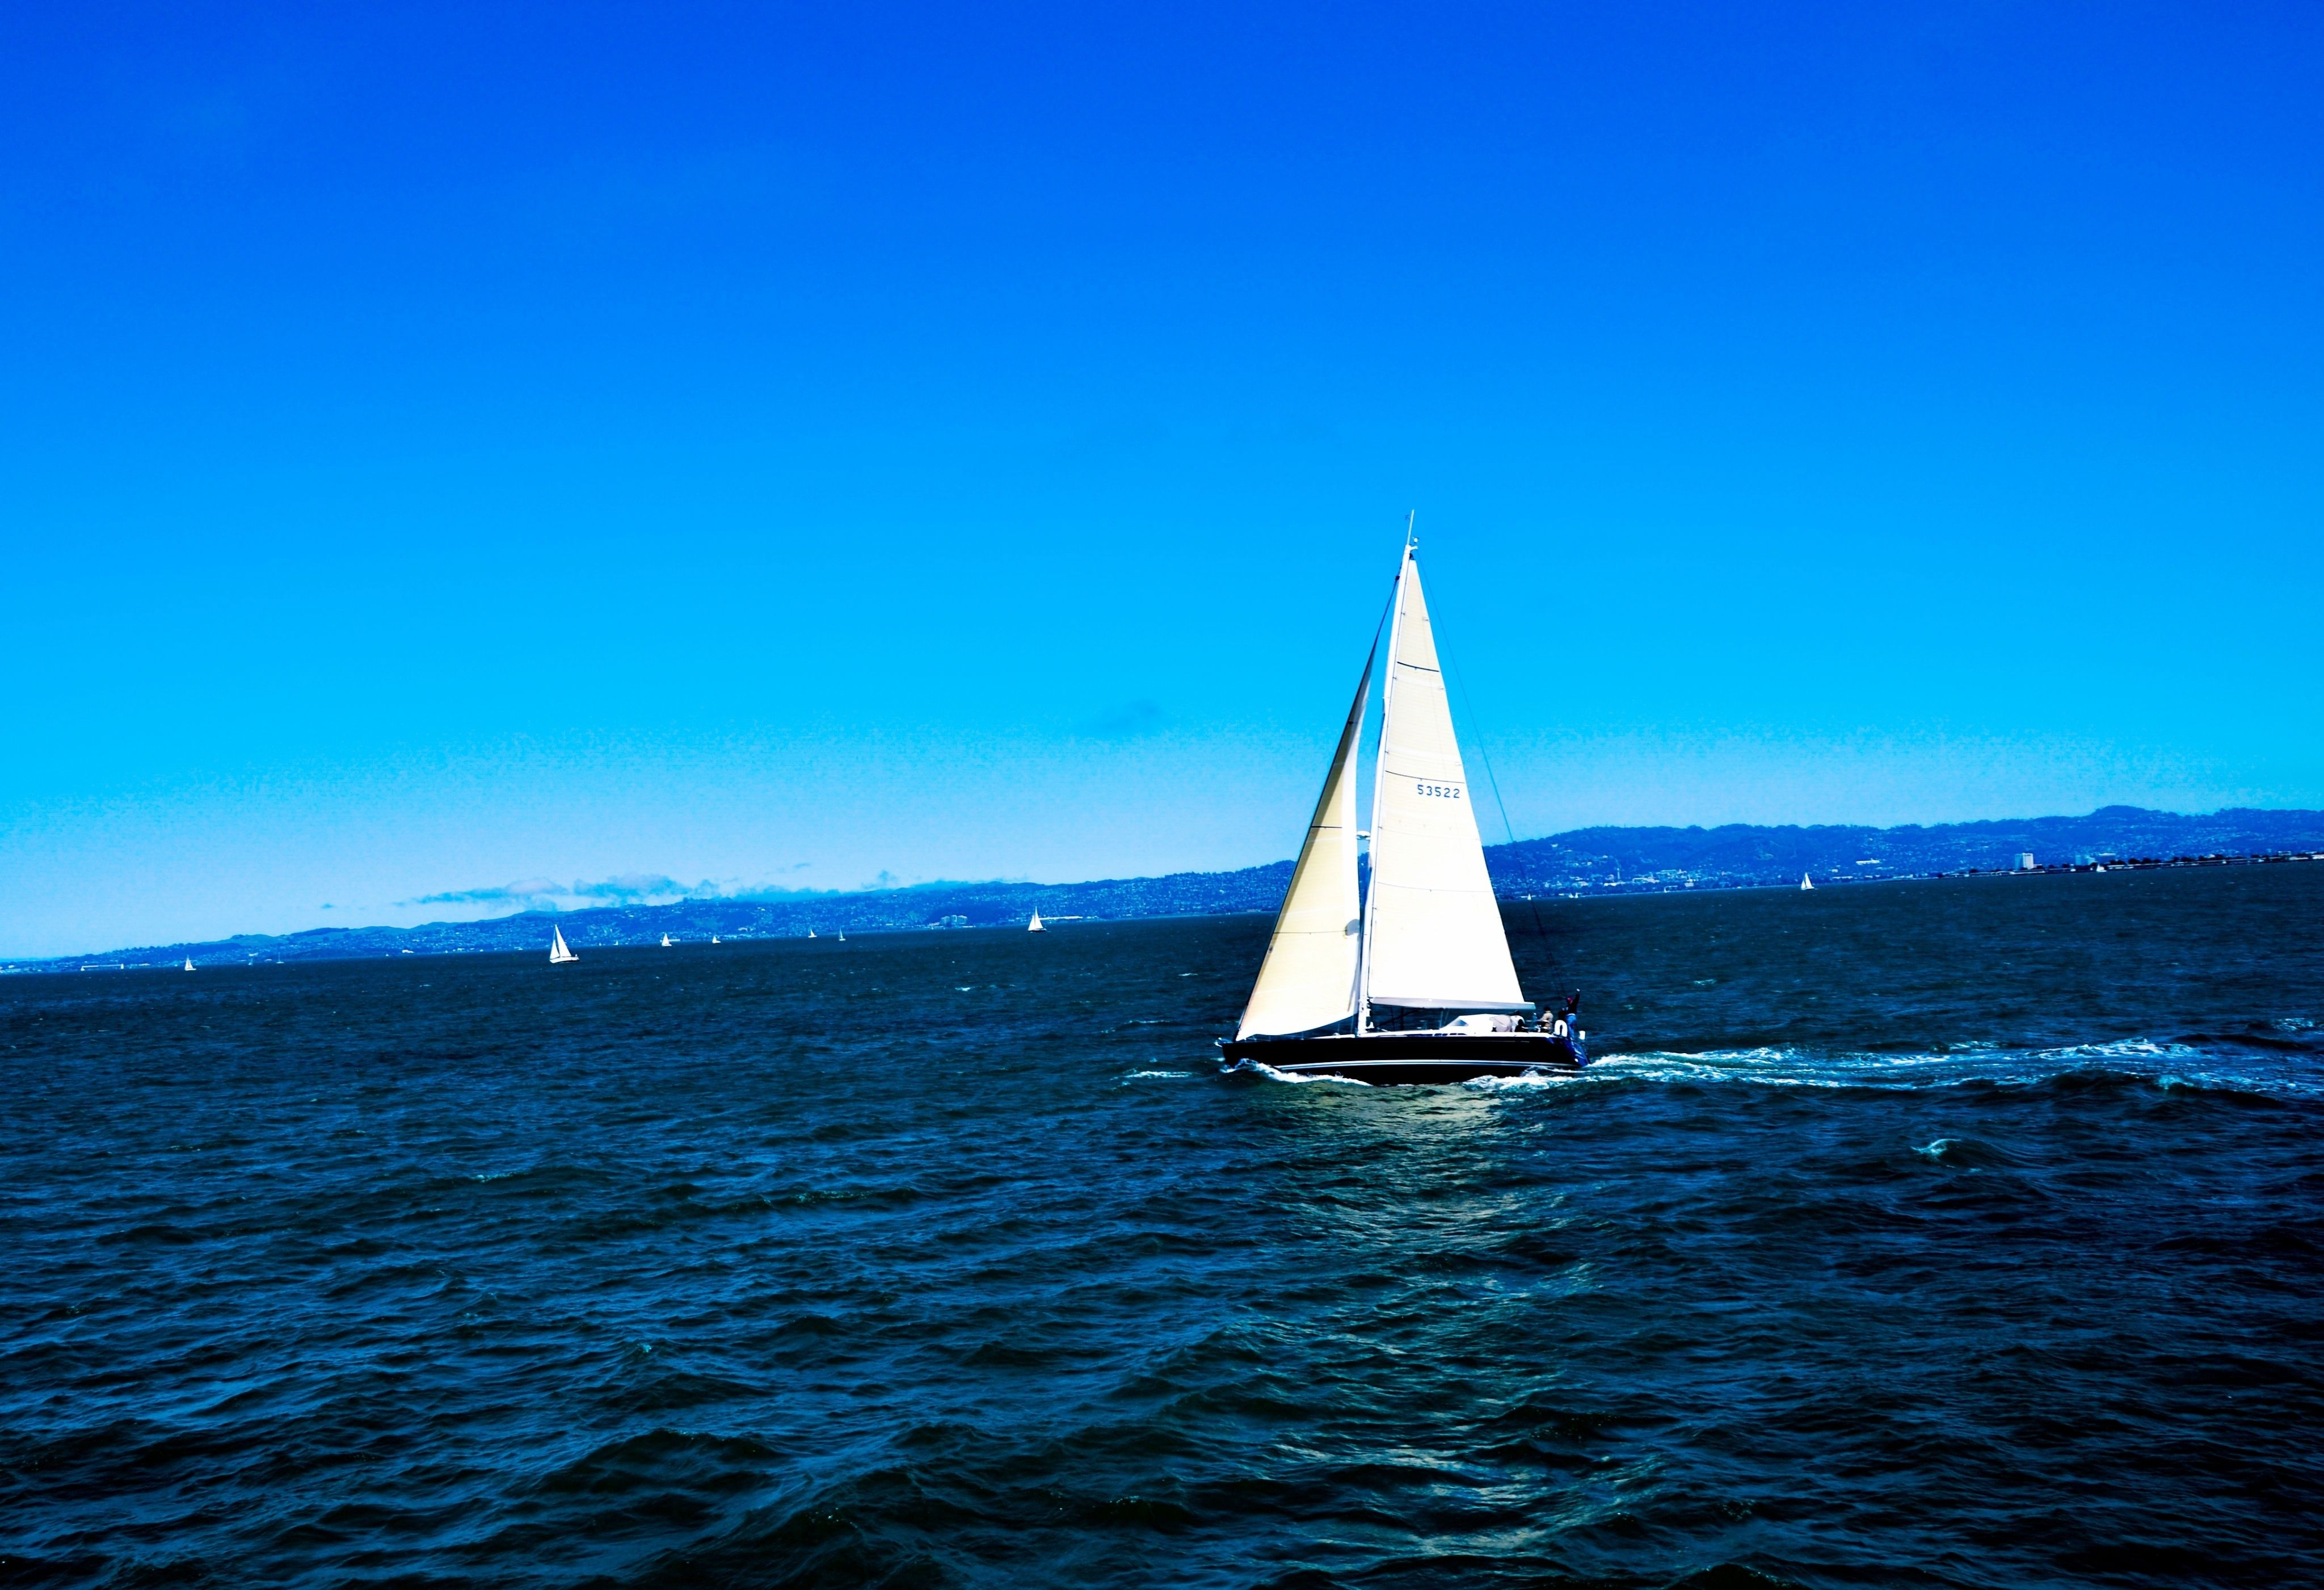 Best 54+ Sailboat Wallpapers on HipWallpapers